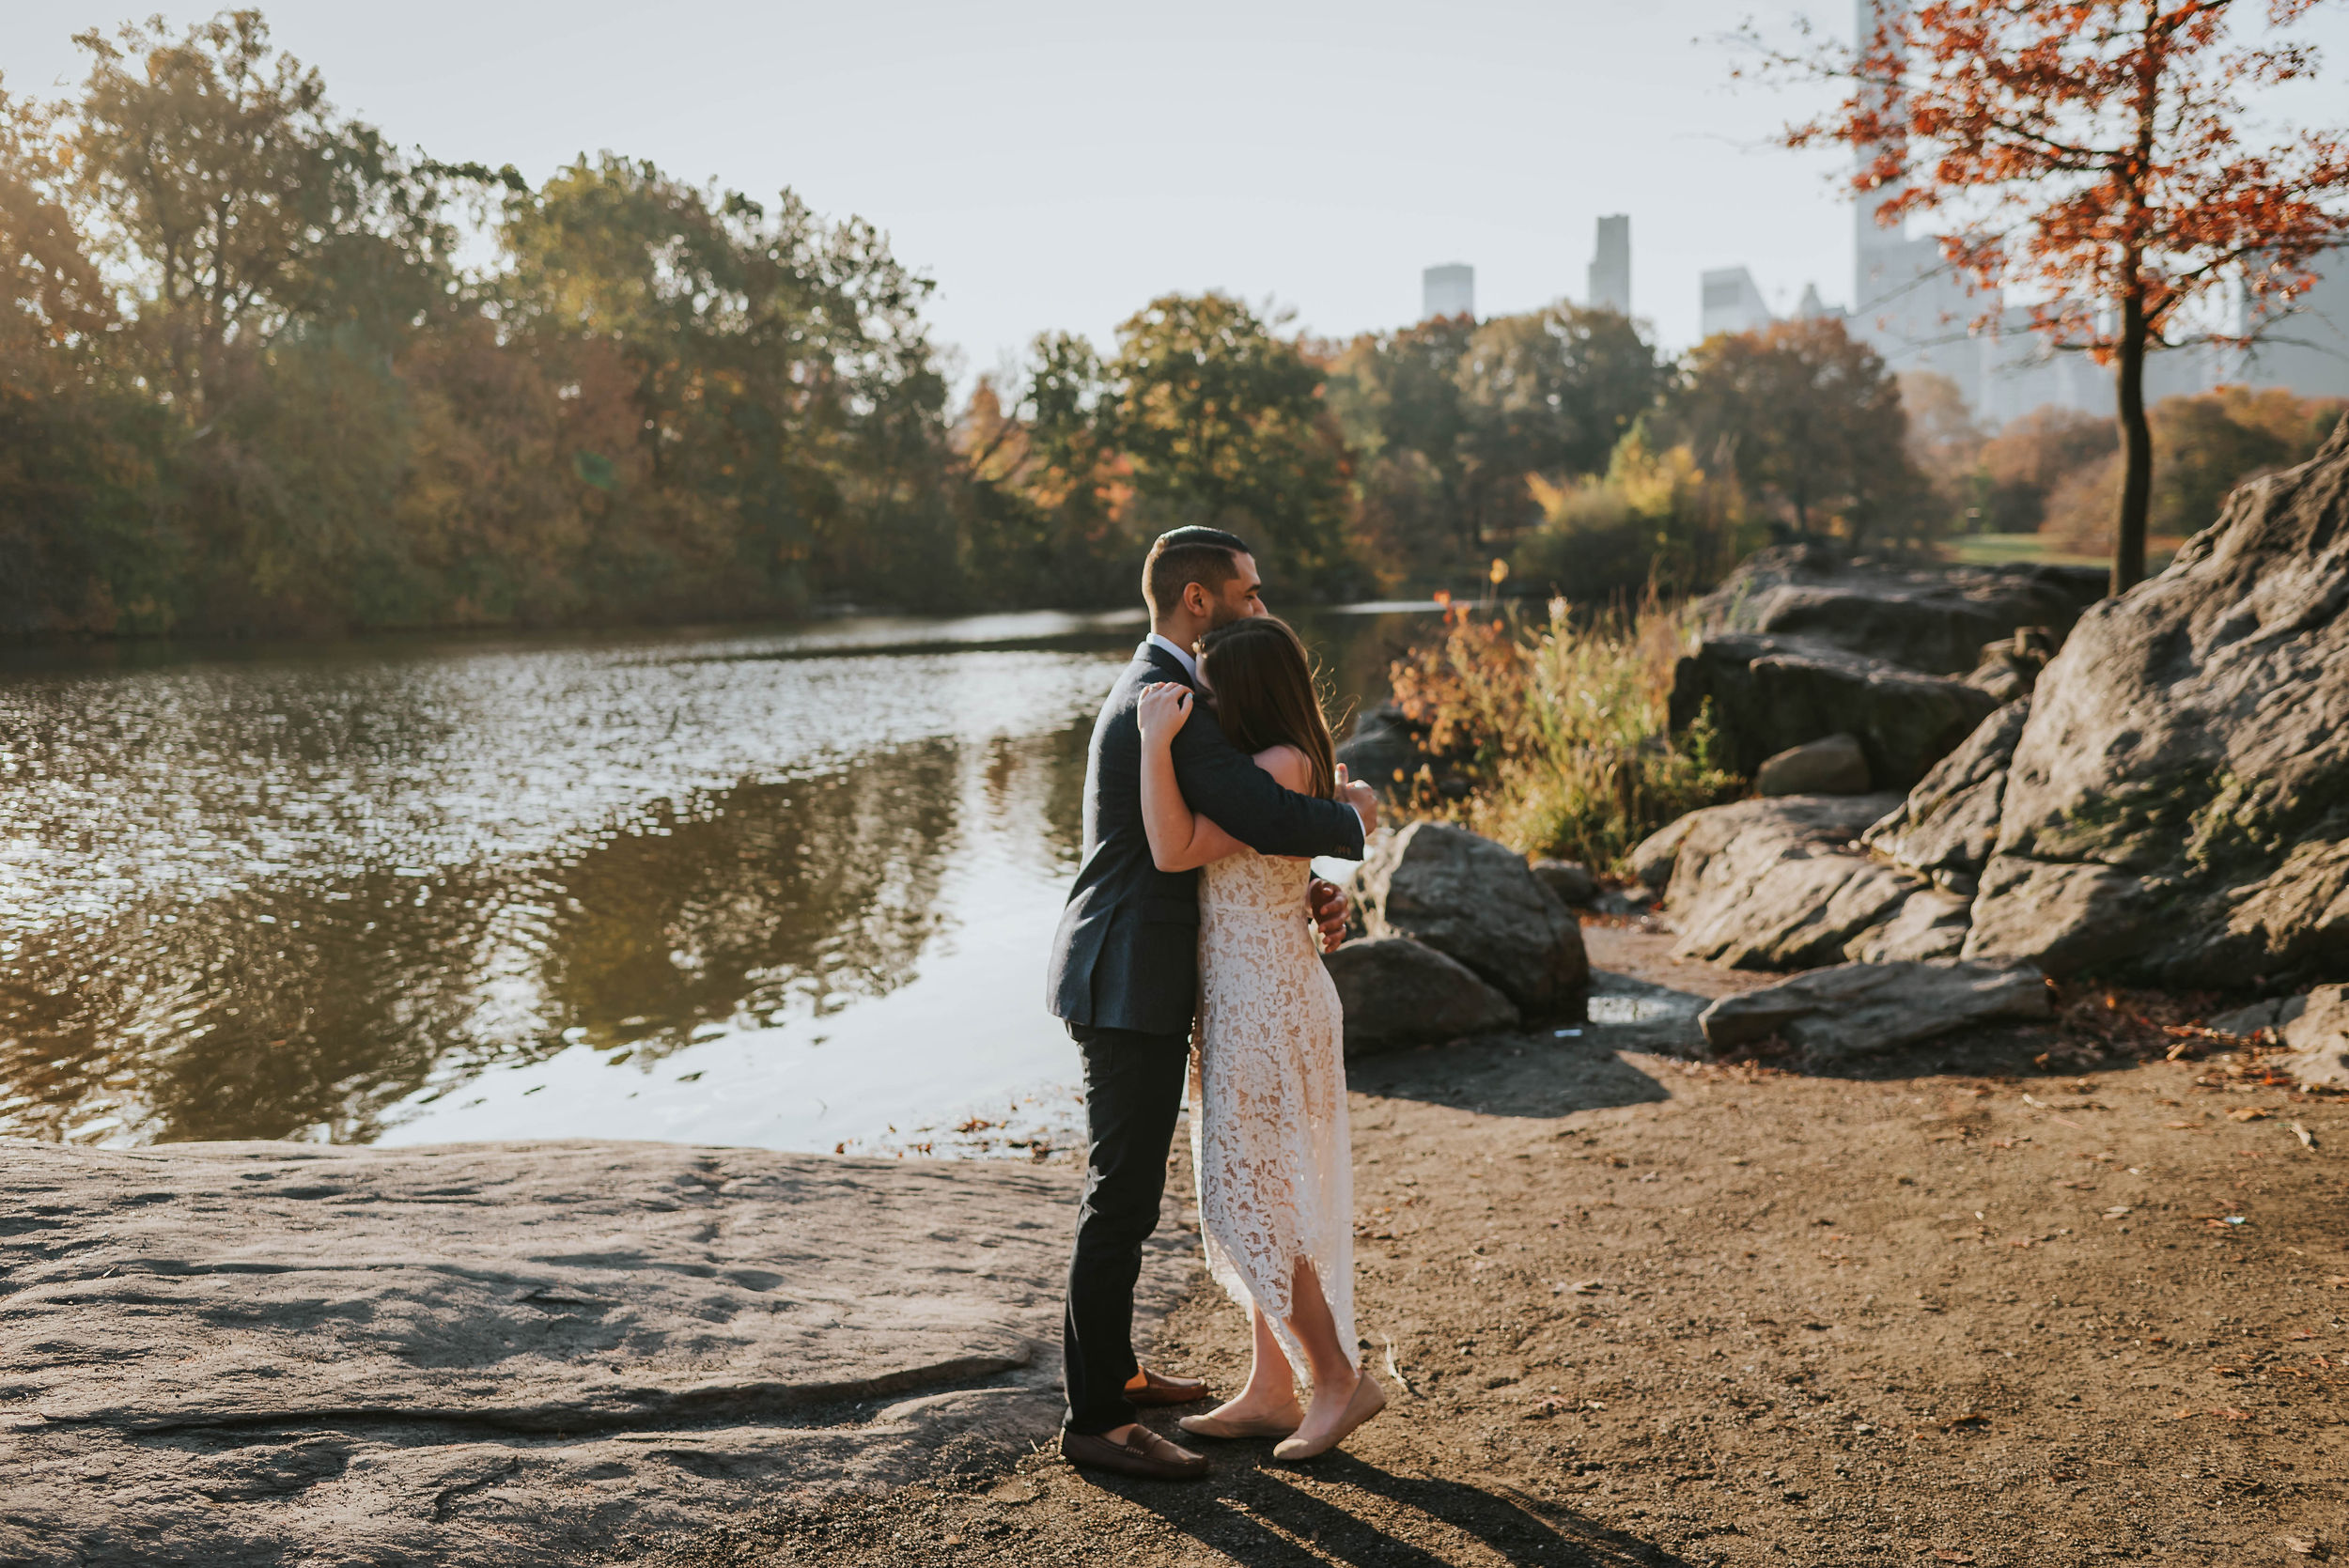 Rebecca and Darryn - Central Park Elopement NYC Manhattan 14.jpg